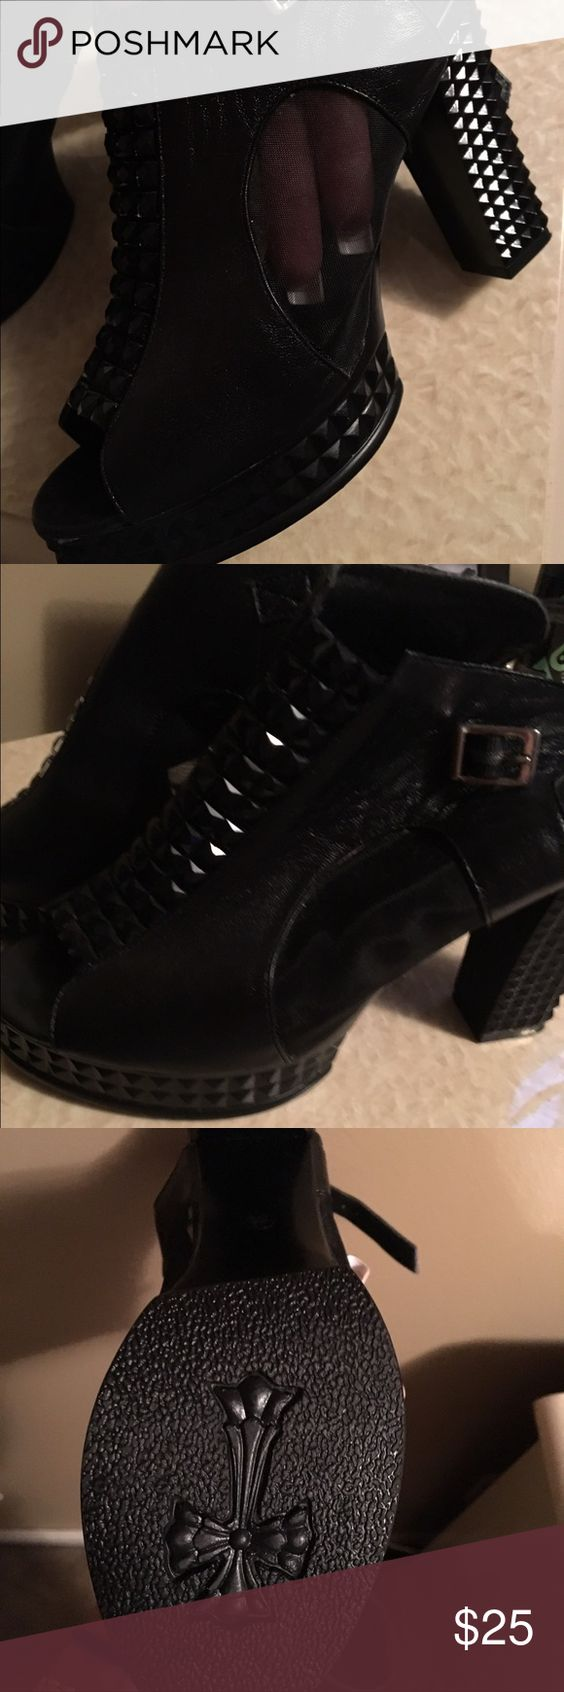 Super cute black chunky heels Never worn fits a size 7 1/2 /8 super cute black chunky heels Calida Shoes Heels